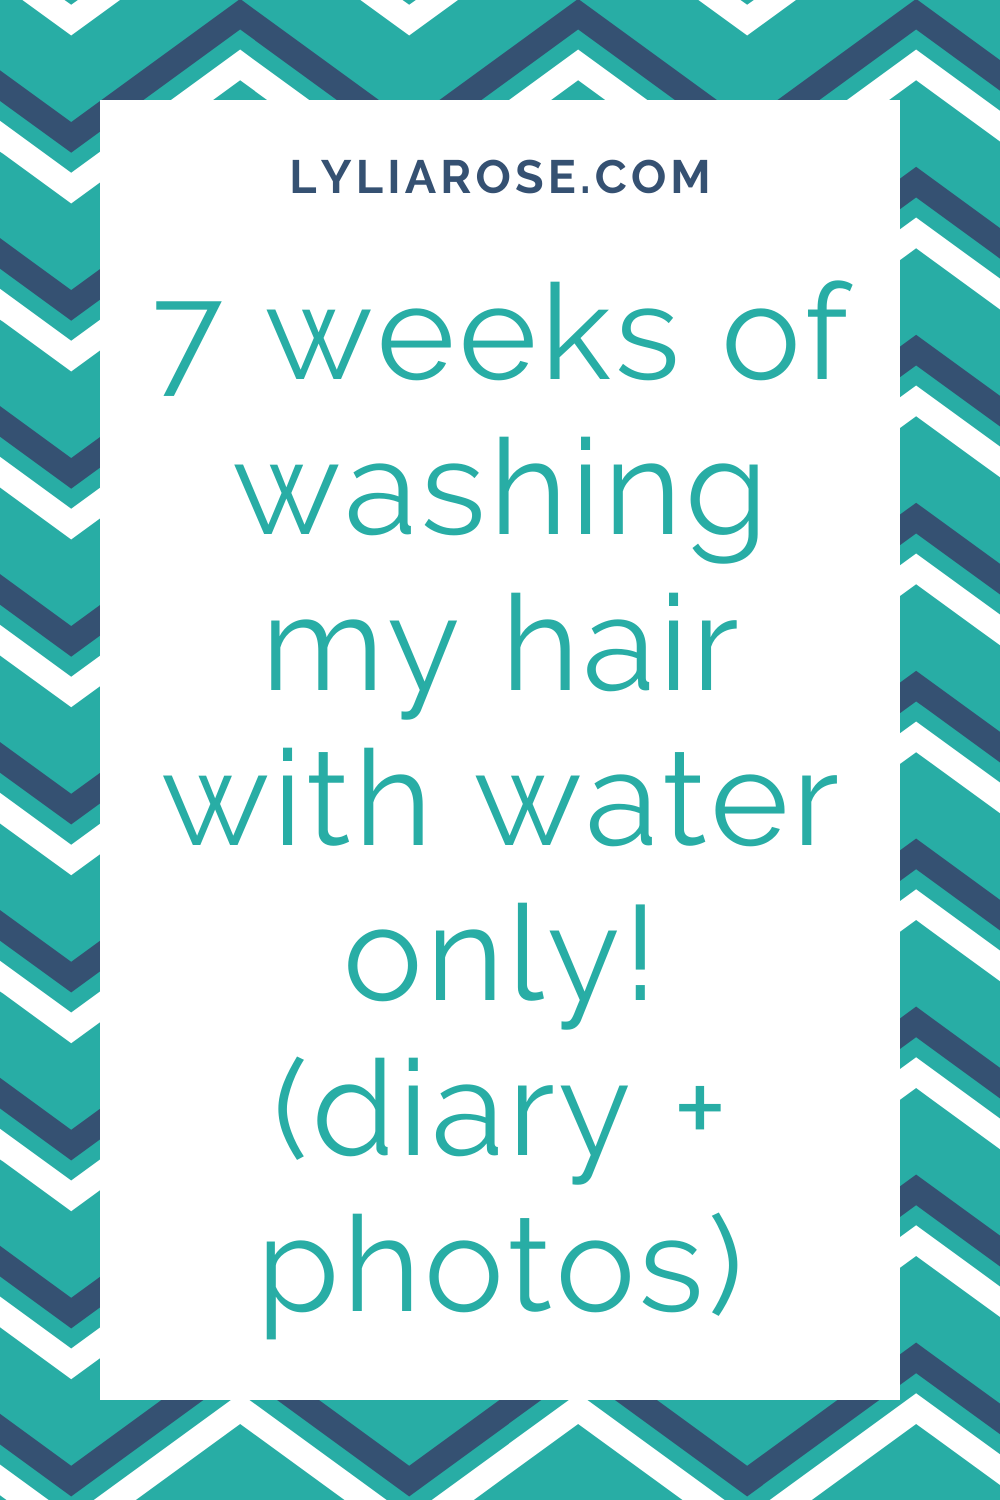 7 weeks of washing my hair with water only!